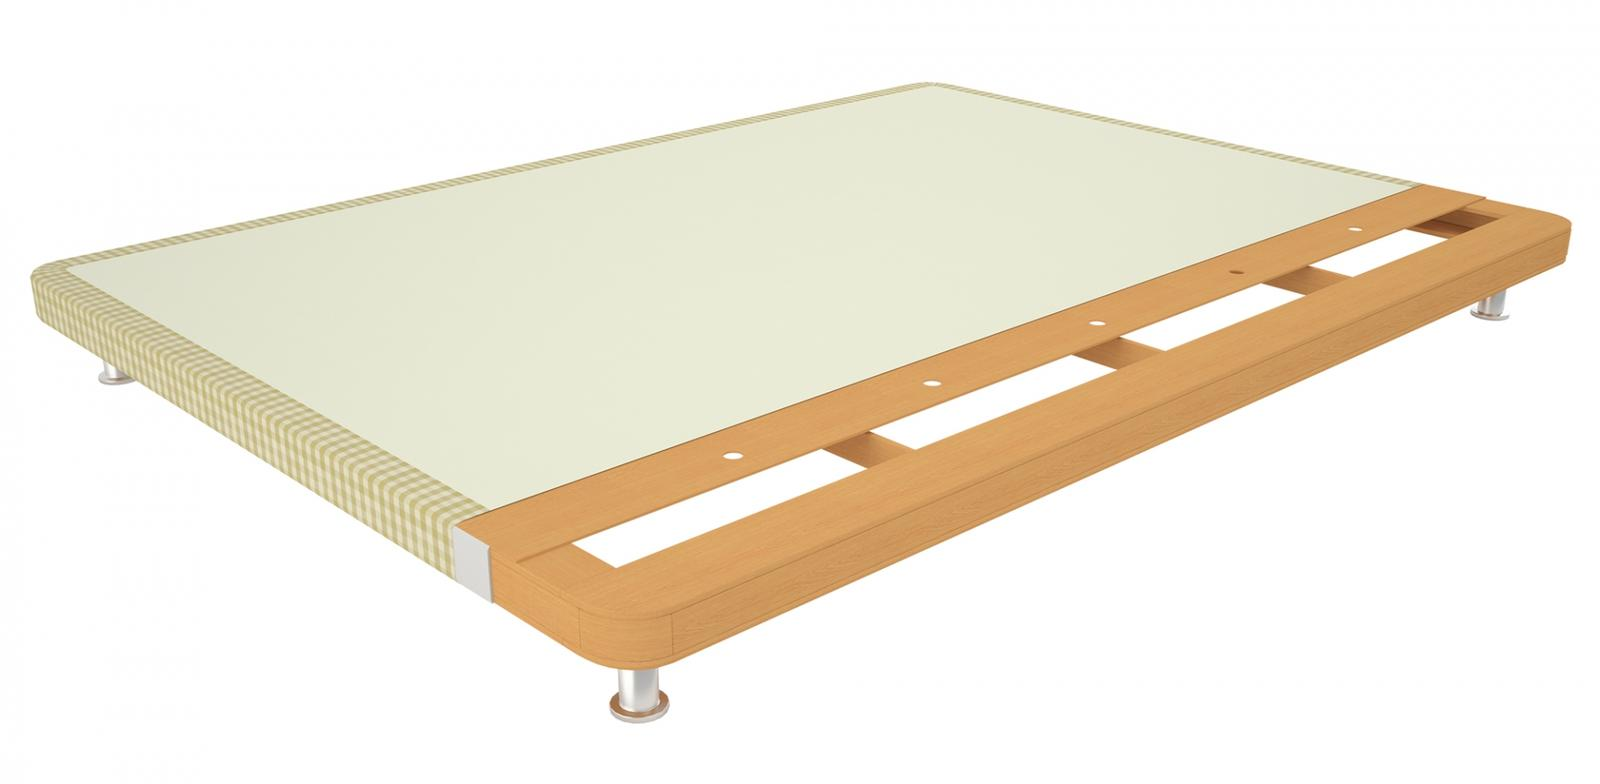 Основание для матраса Mr.Mattress Simple Box Base